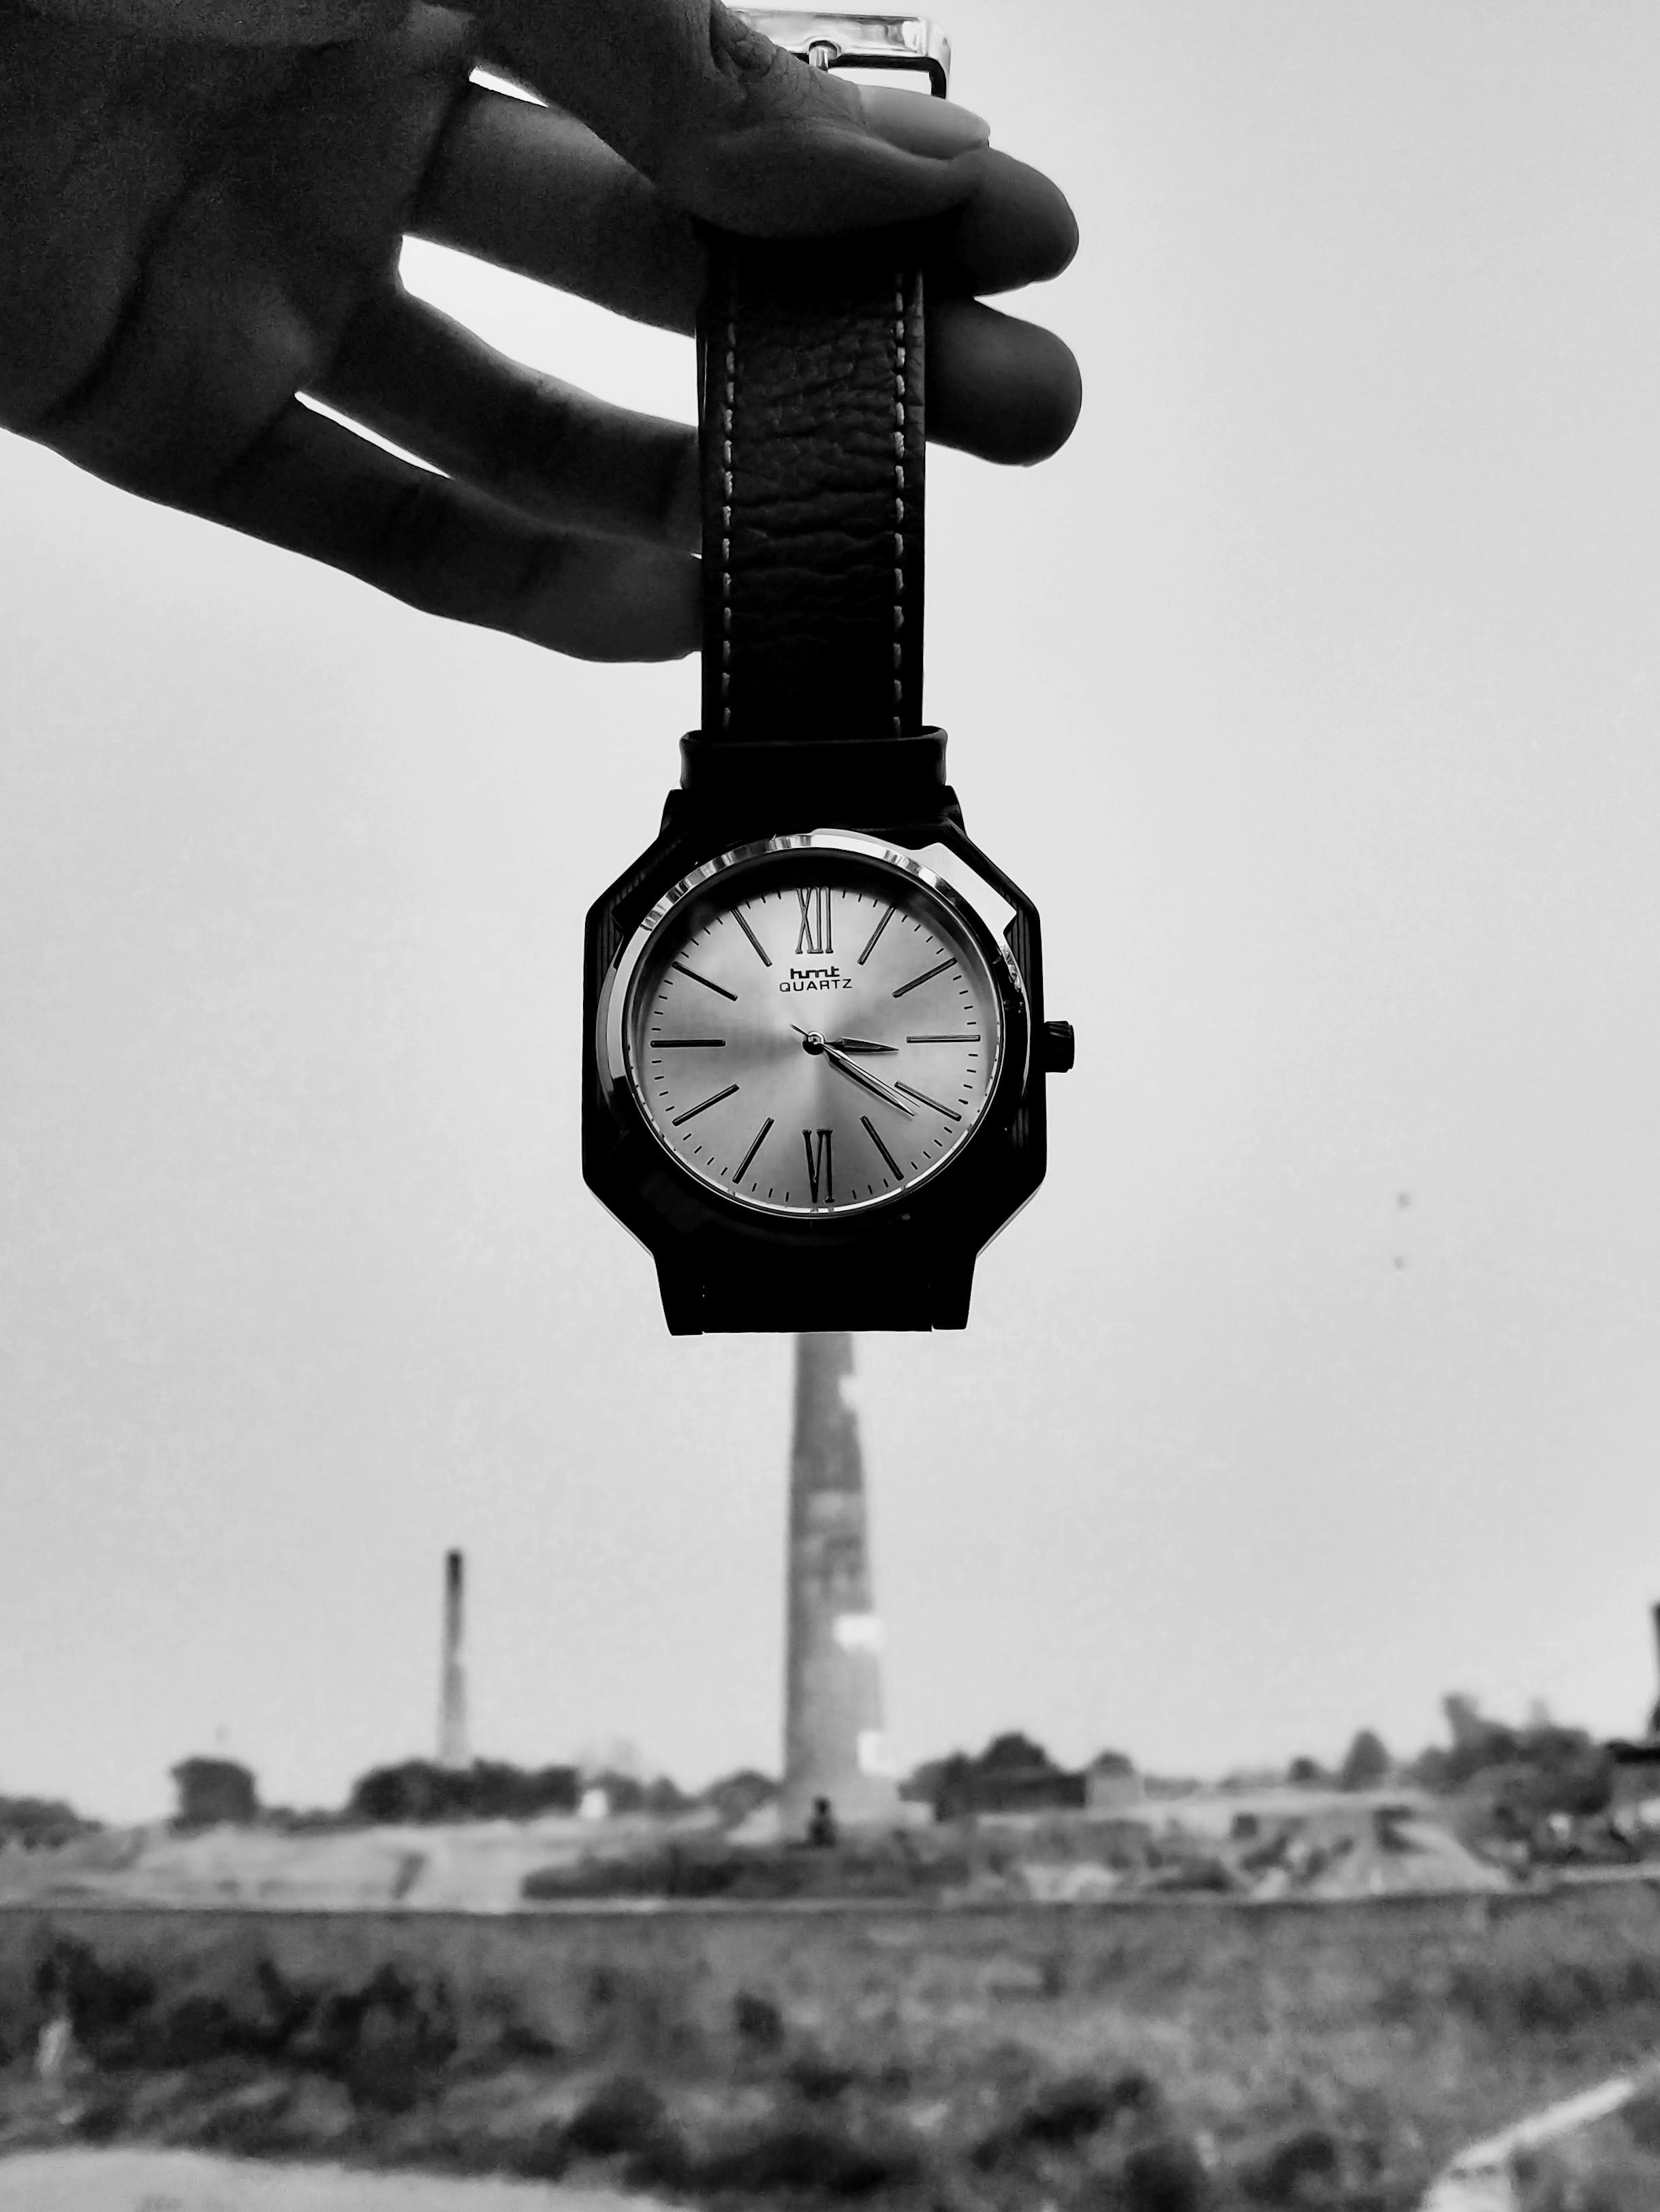 Free stock photo of black and white, blurred background, chimney, clear sky